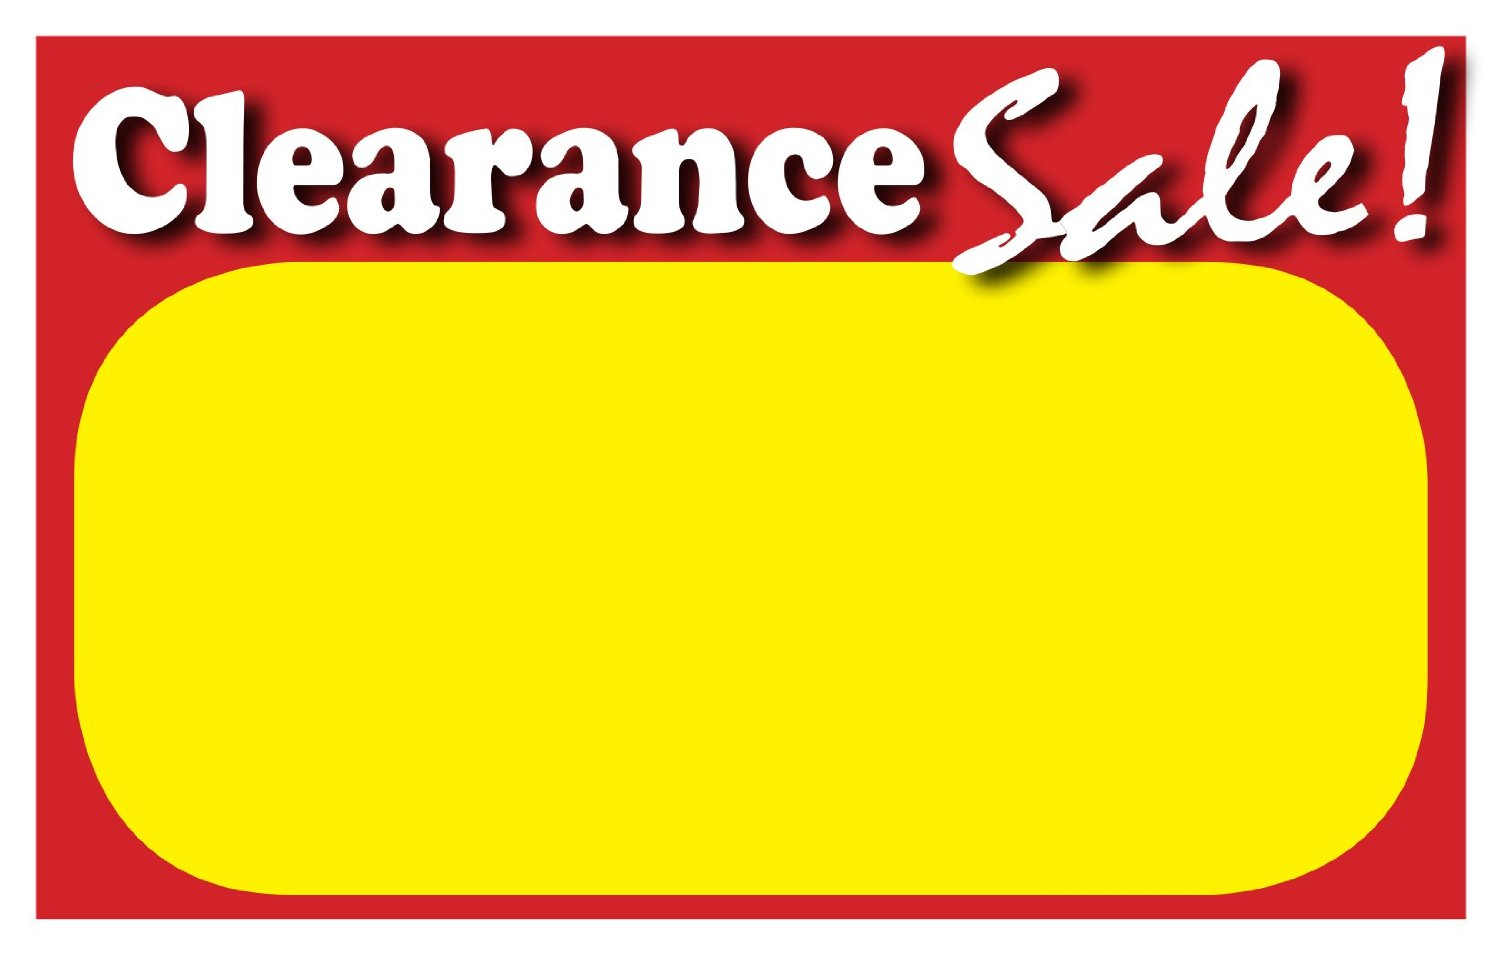 buy retail clearance signs template 5 5 x3 5 blank sale. Black Bedroom Furniture Sets. Home Design Ideas